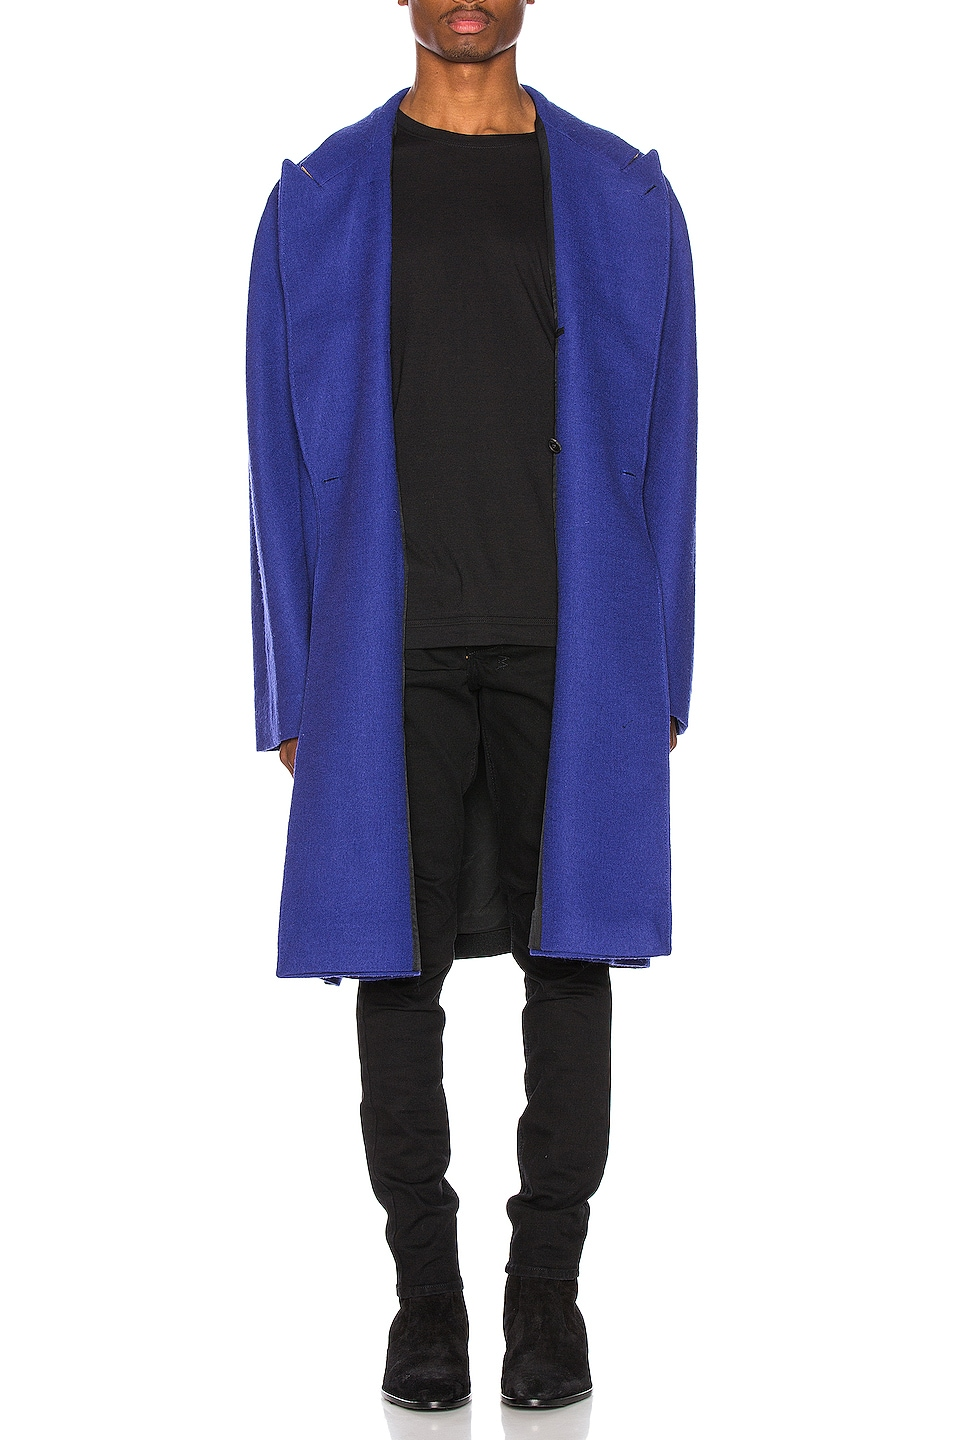 Image 1 of Haider Ackermann Oversized Coat in Sargent Blue & Lord Black & Lord Camel